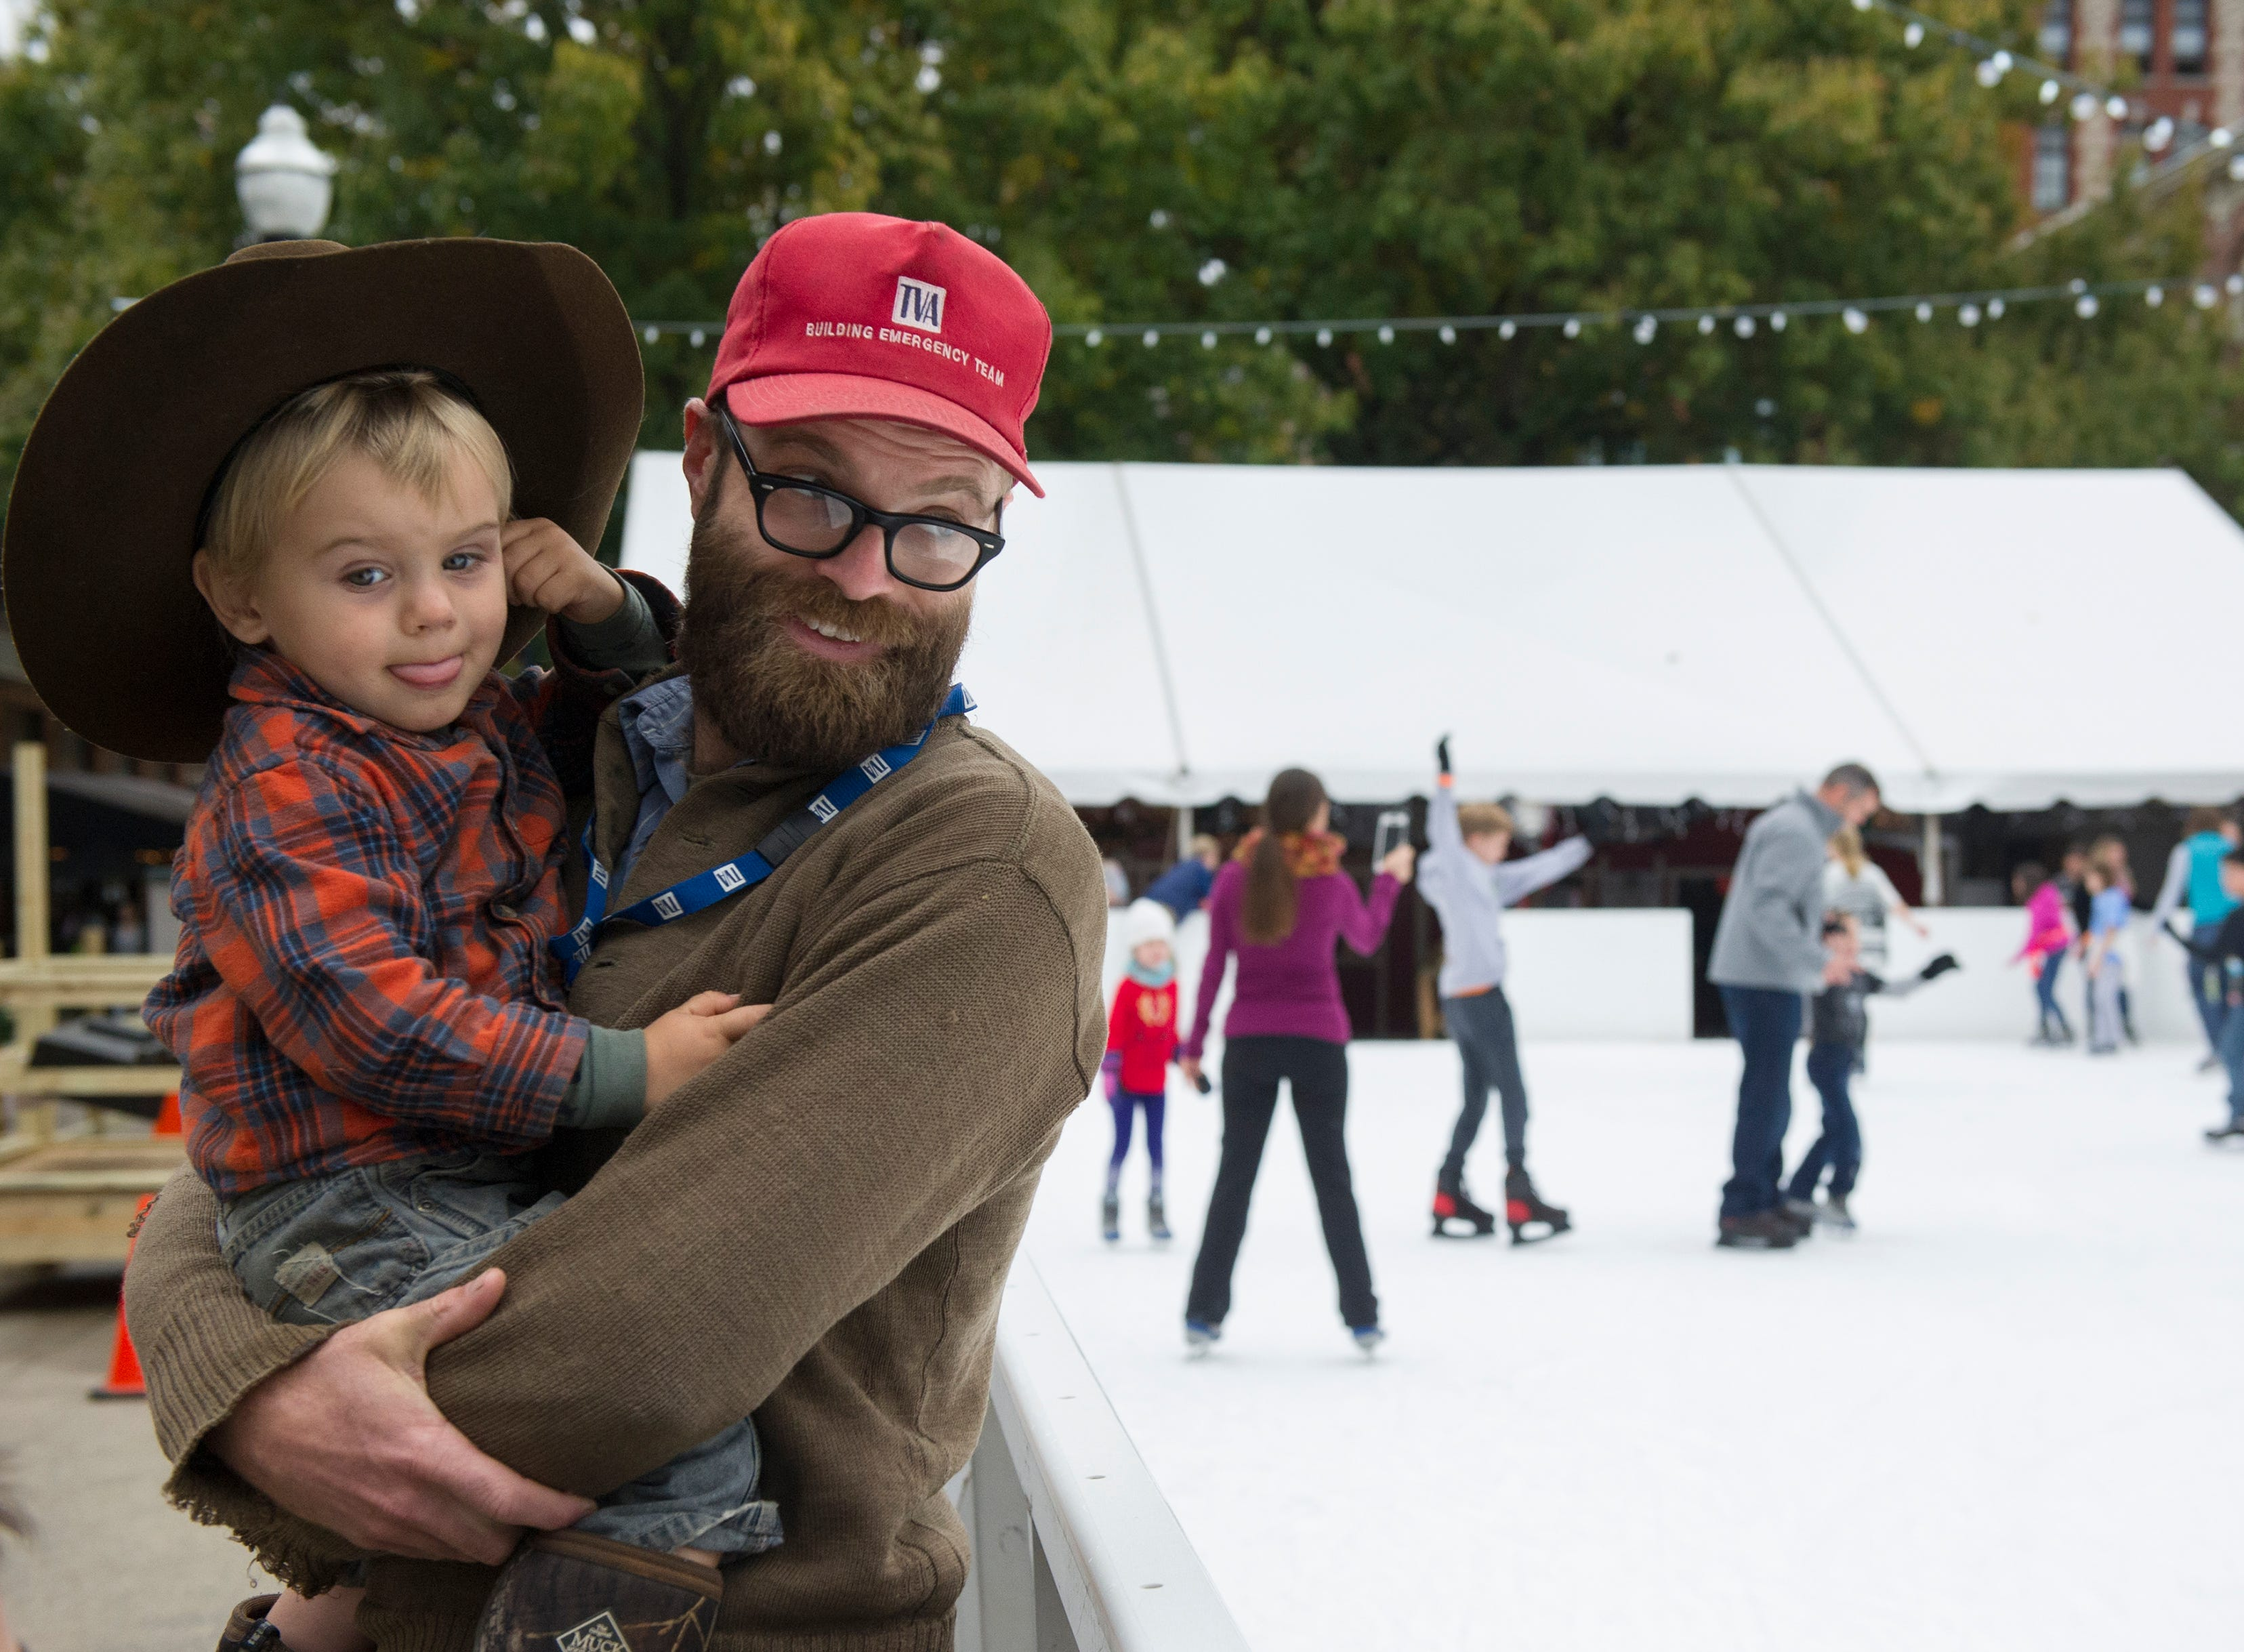 William Cantrell of Knoxville (right) holds his son Woodrow Cantrell, 2, as they watch skaters during opening weekend for the Market Square ice skating rink Saturday, Nov. 28, 2015.